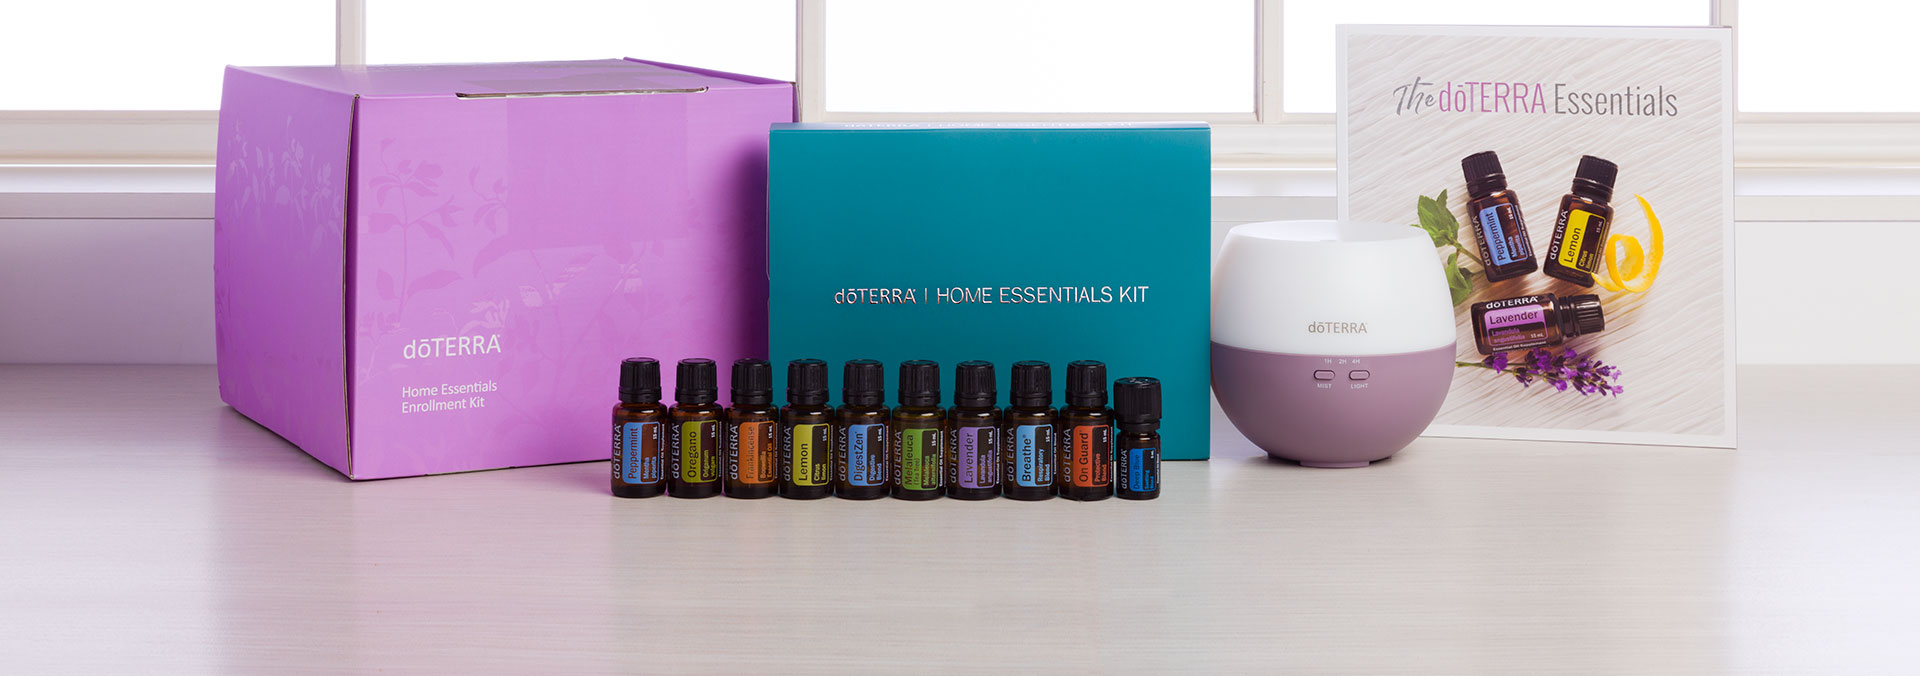 doterra-poweroele-home-essentials-kit